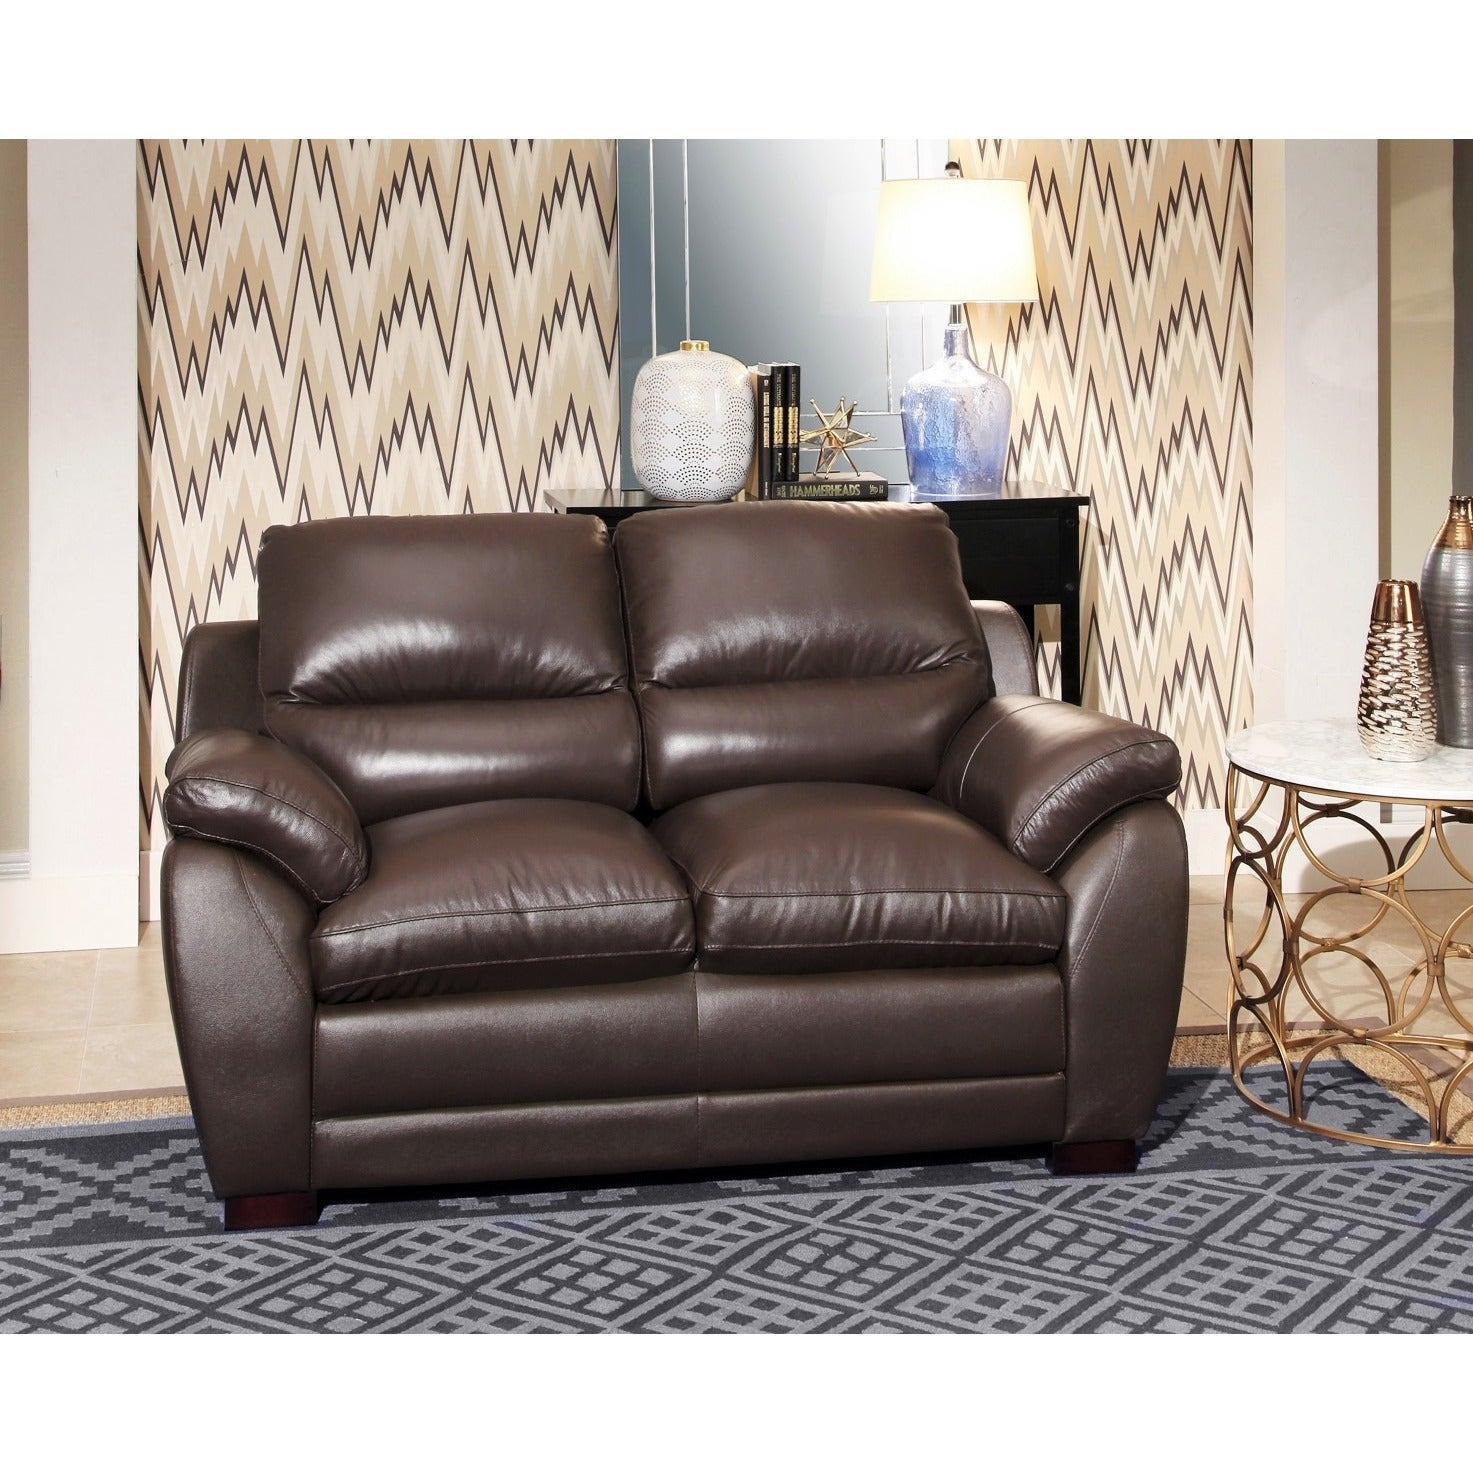 all of leather livings rustic full chicagoleather beige inspirations brownleather sofa image for size paladia reclining living blue set room new in sets